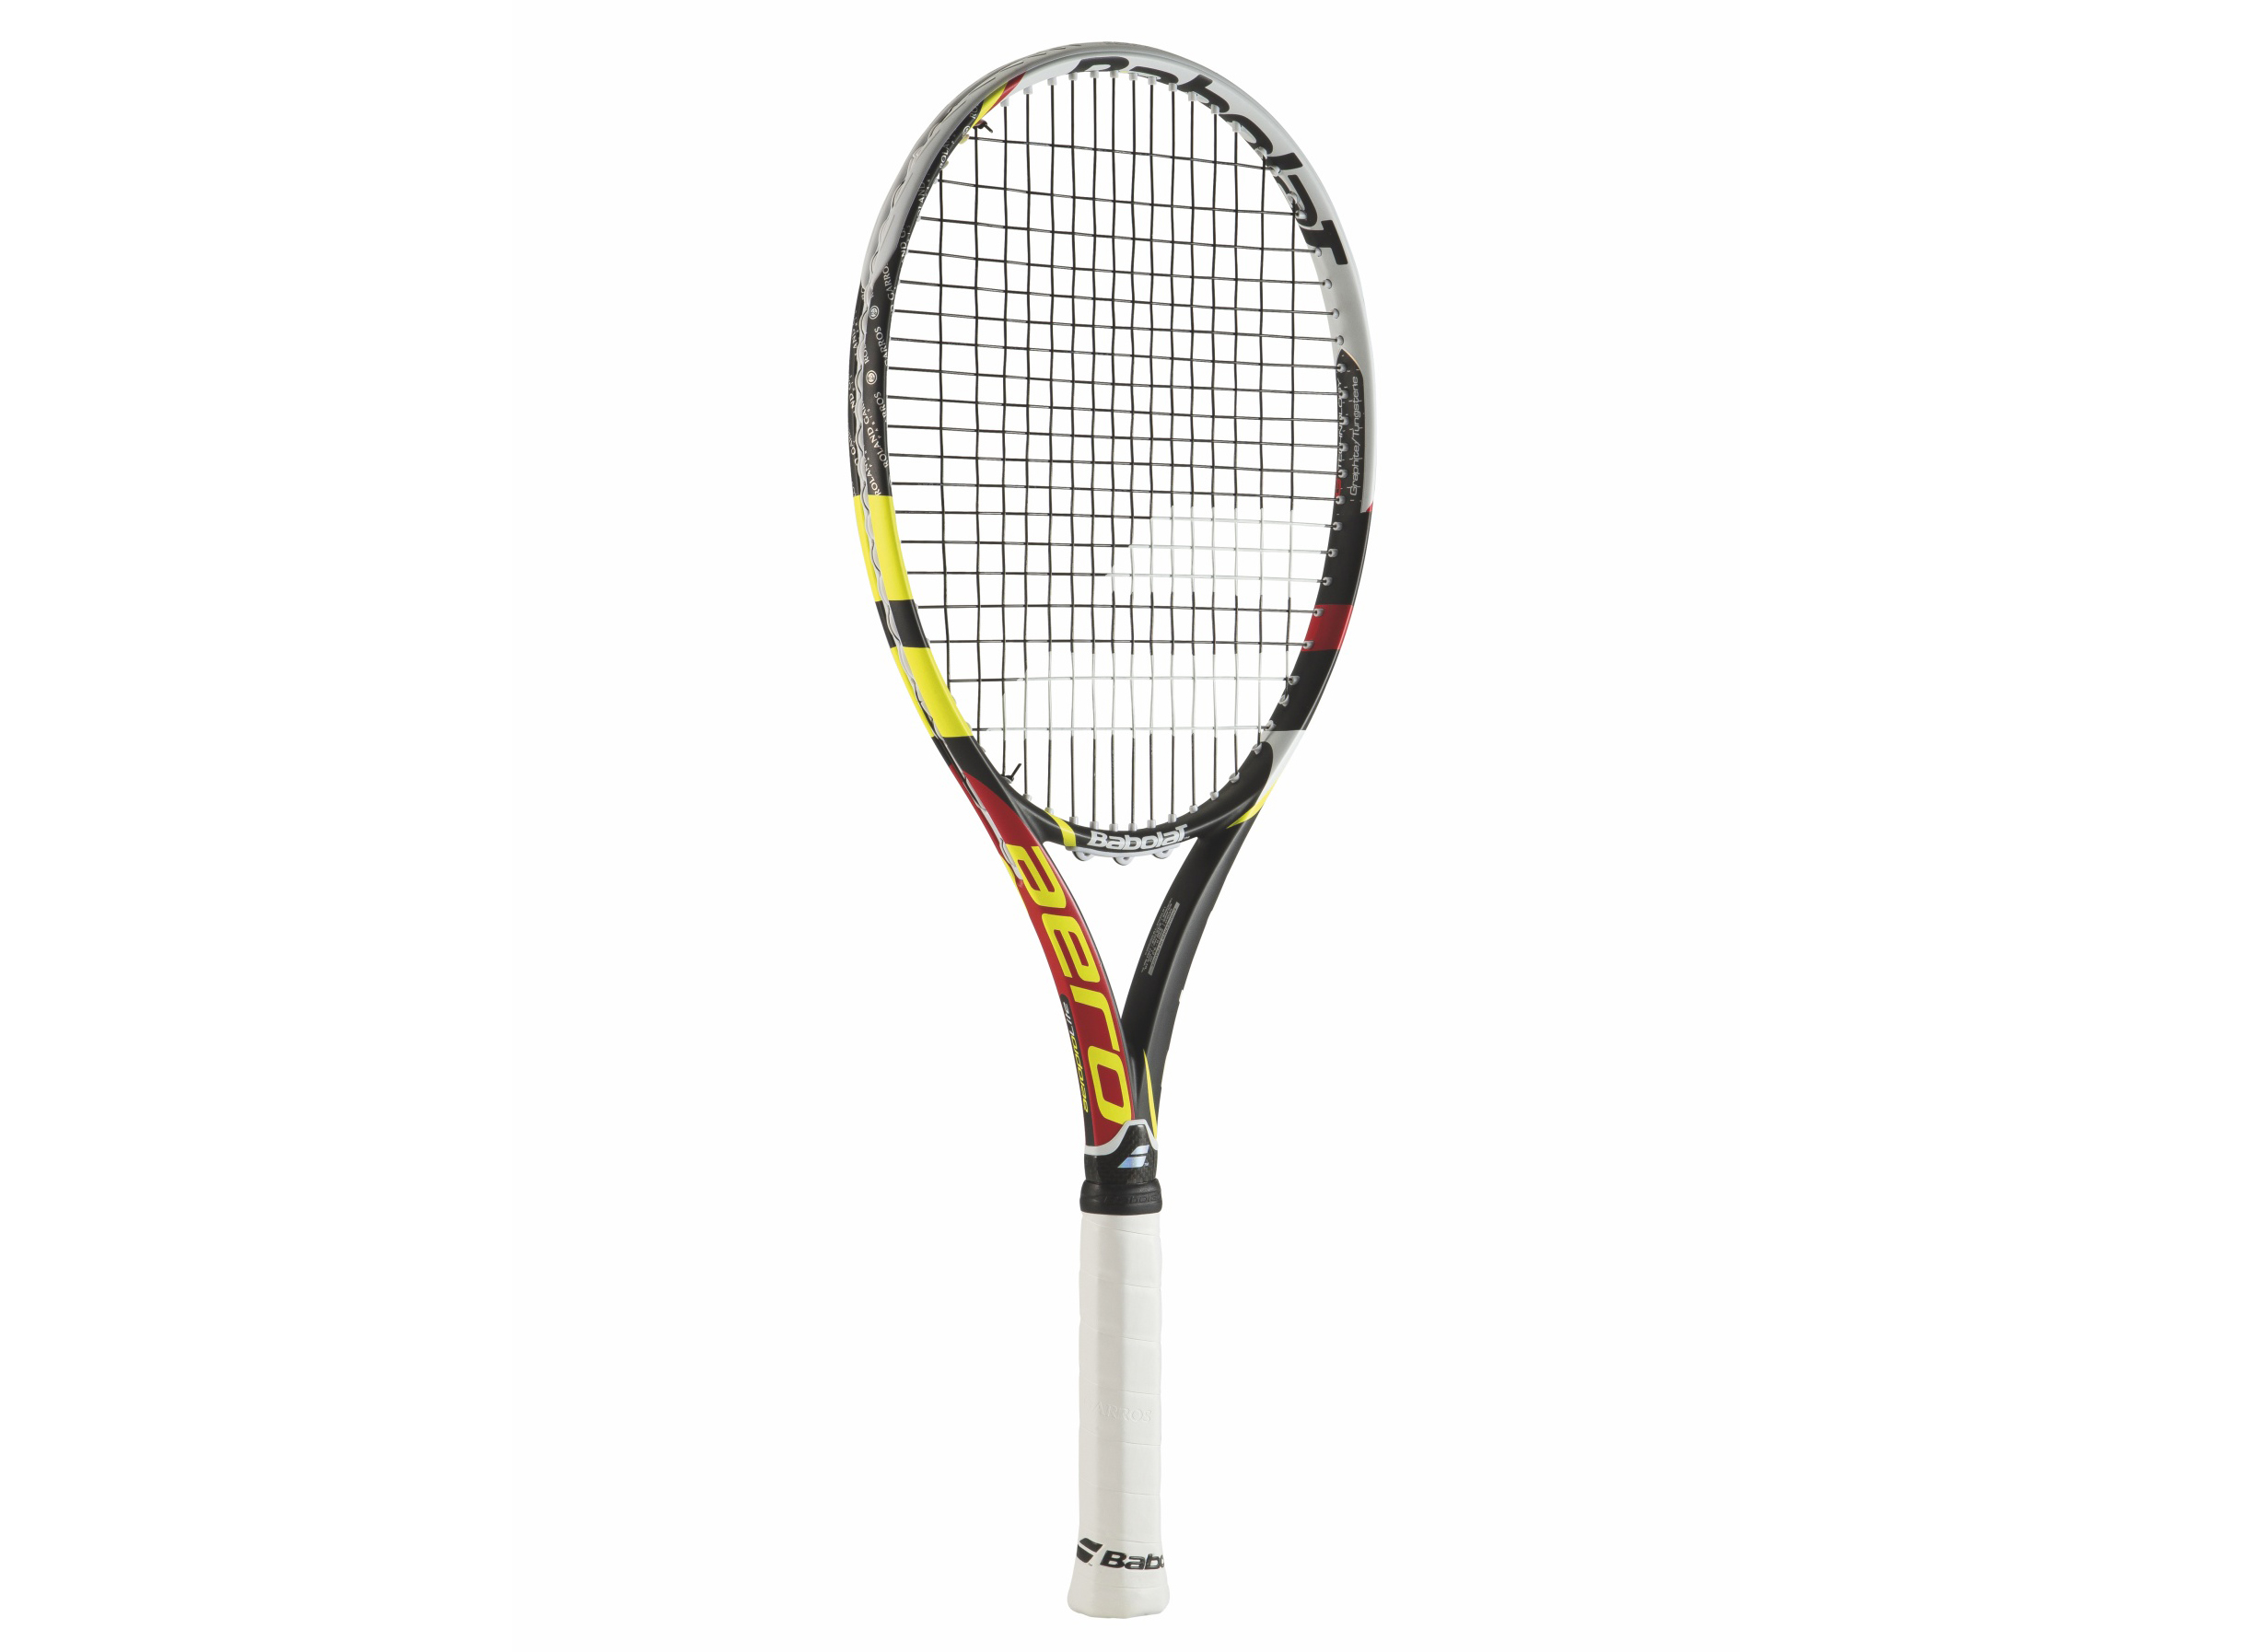 Babolat AeroPro Lite French Open 2015 G3